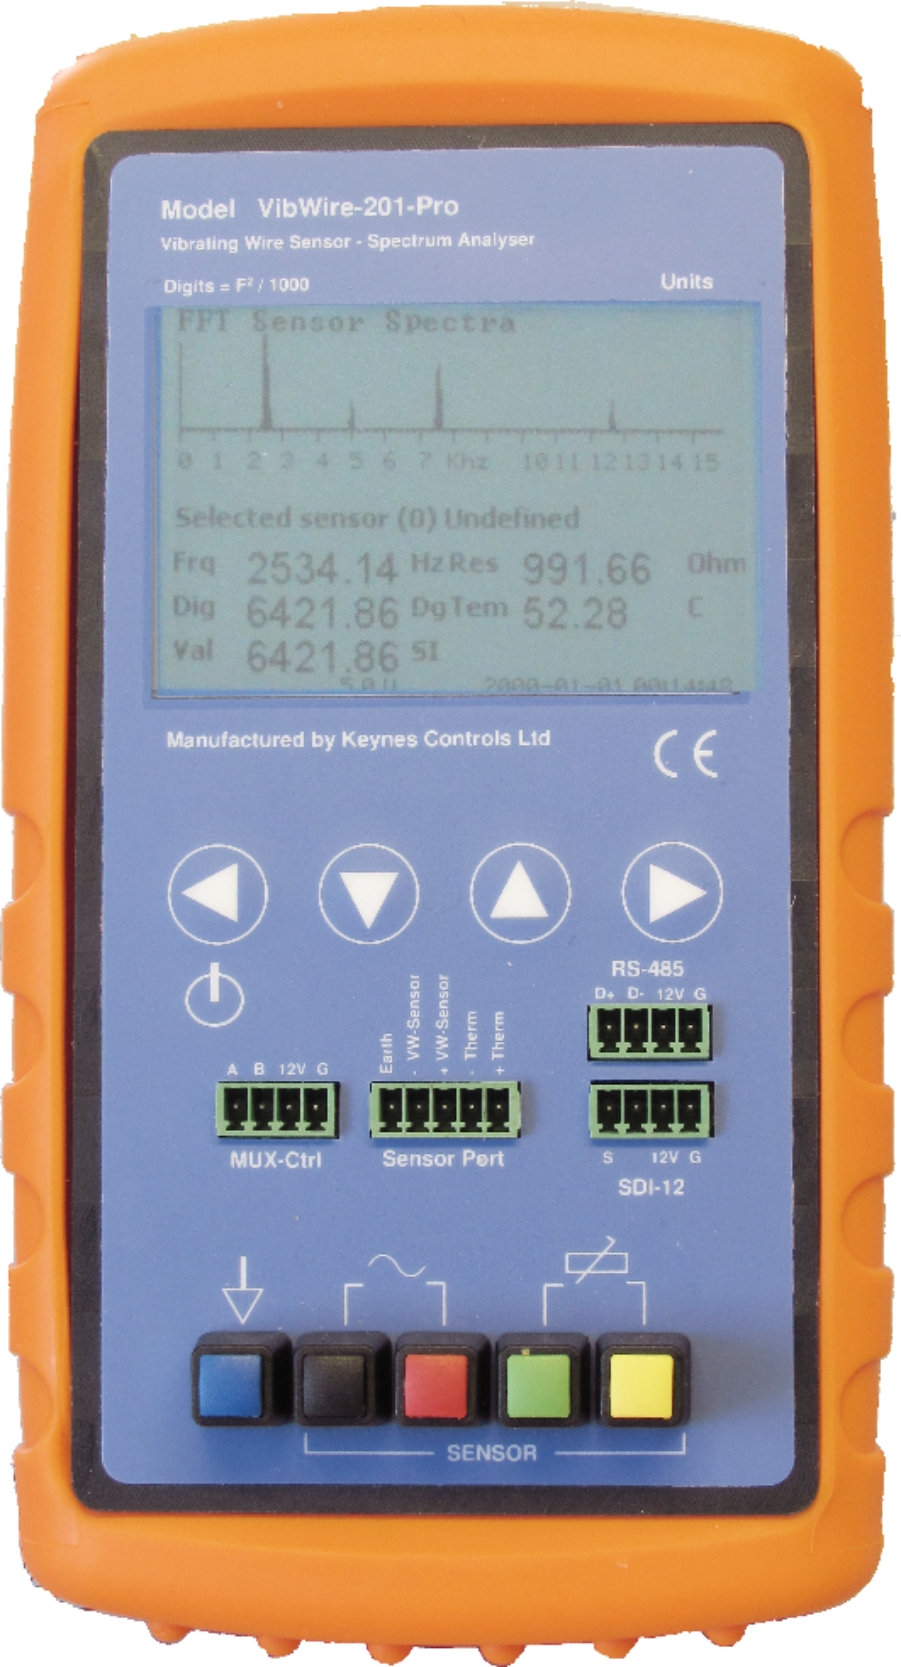 VibWire-201-Pro Vibrating Wire Spectral Analyser & Logger Unit ...